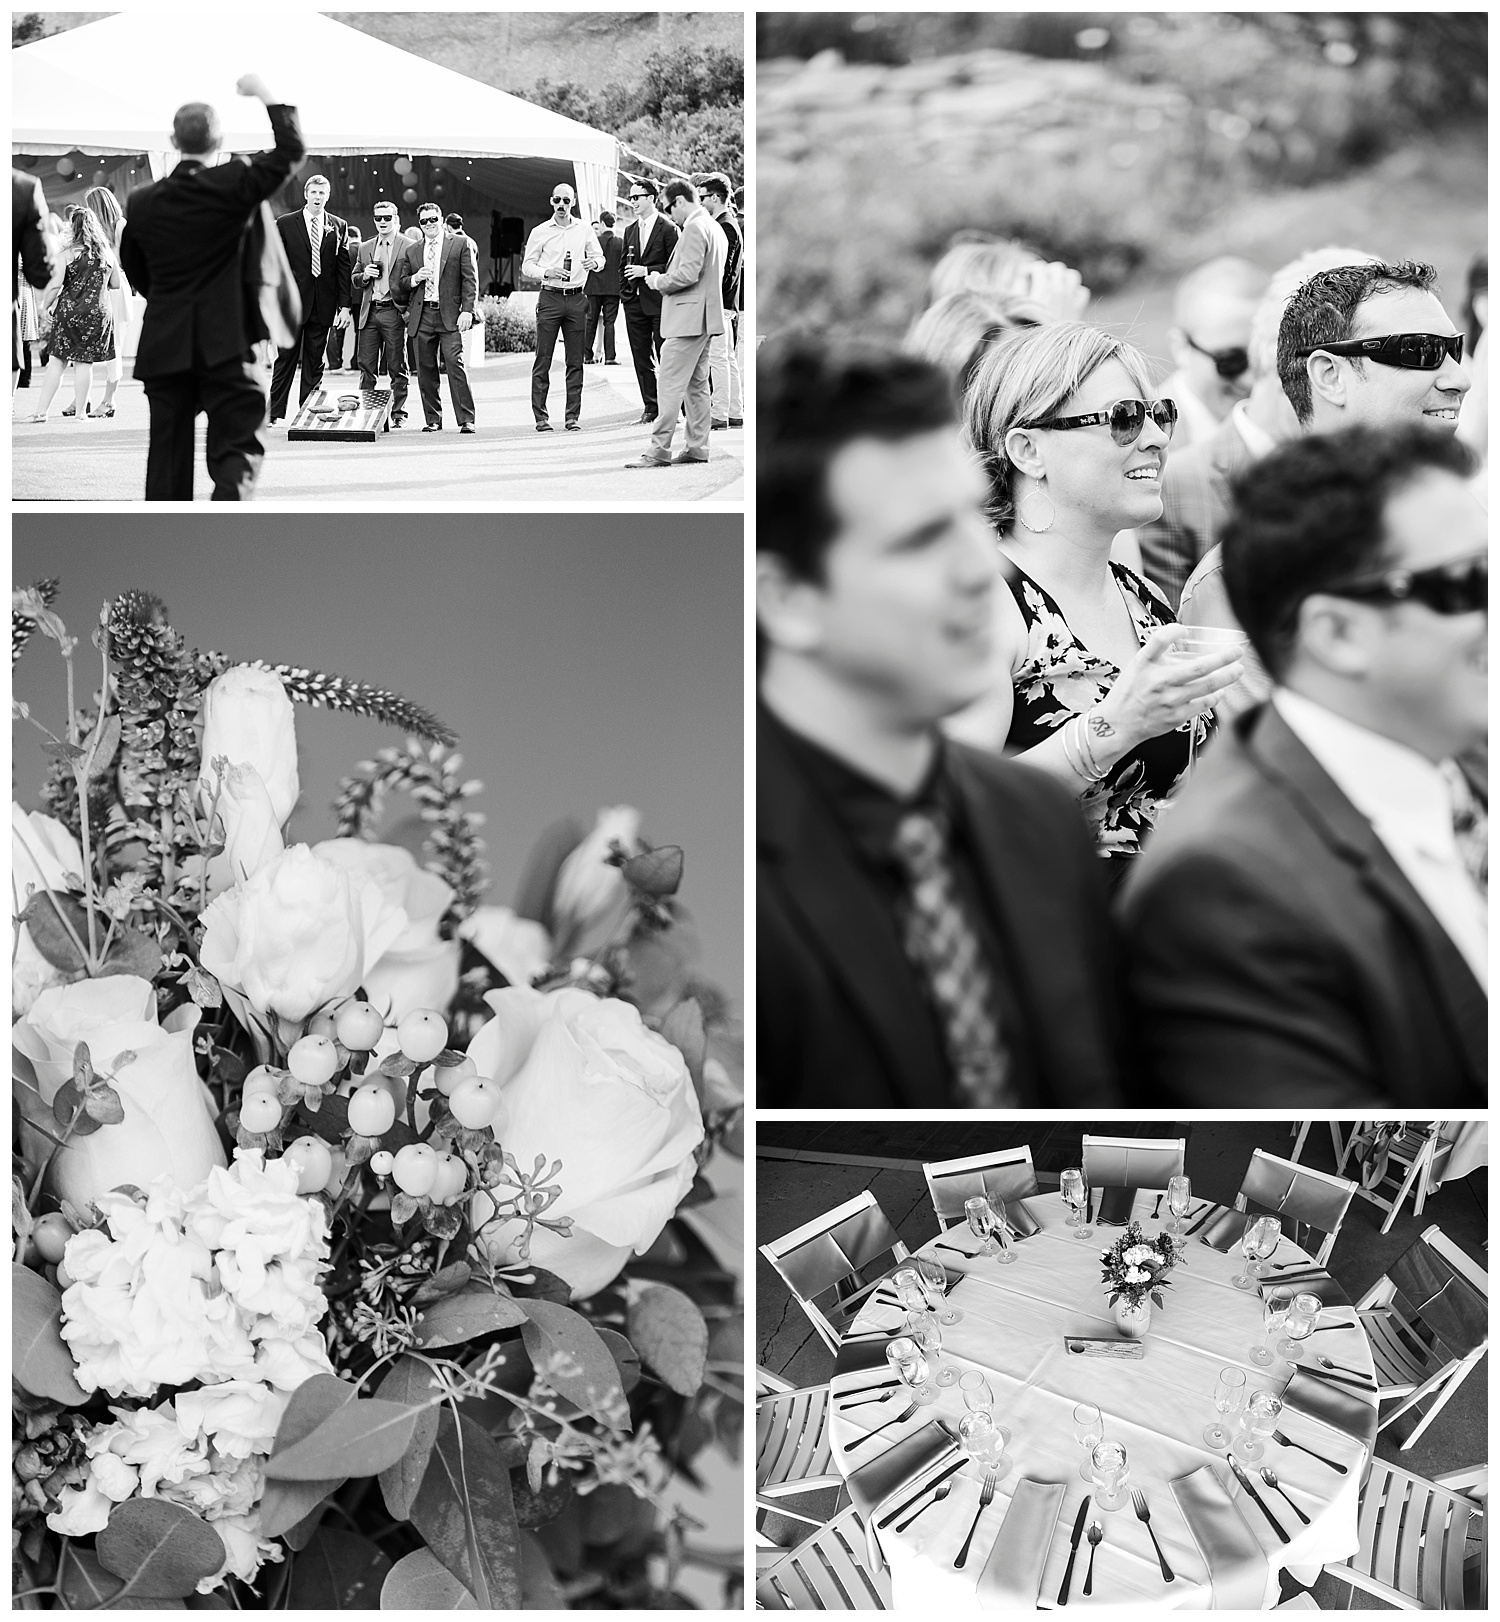 Arrowhead_Golf_Course_Wedding_Littleton_Colorado_Apollo_Fields_174.jpg